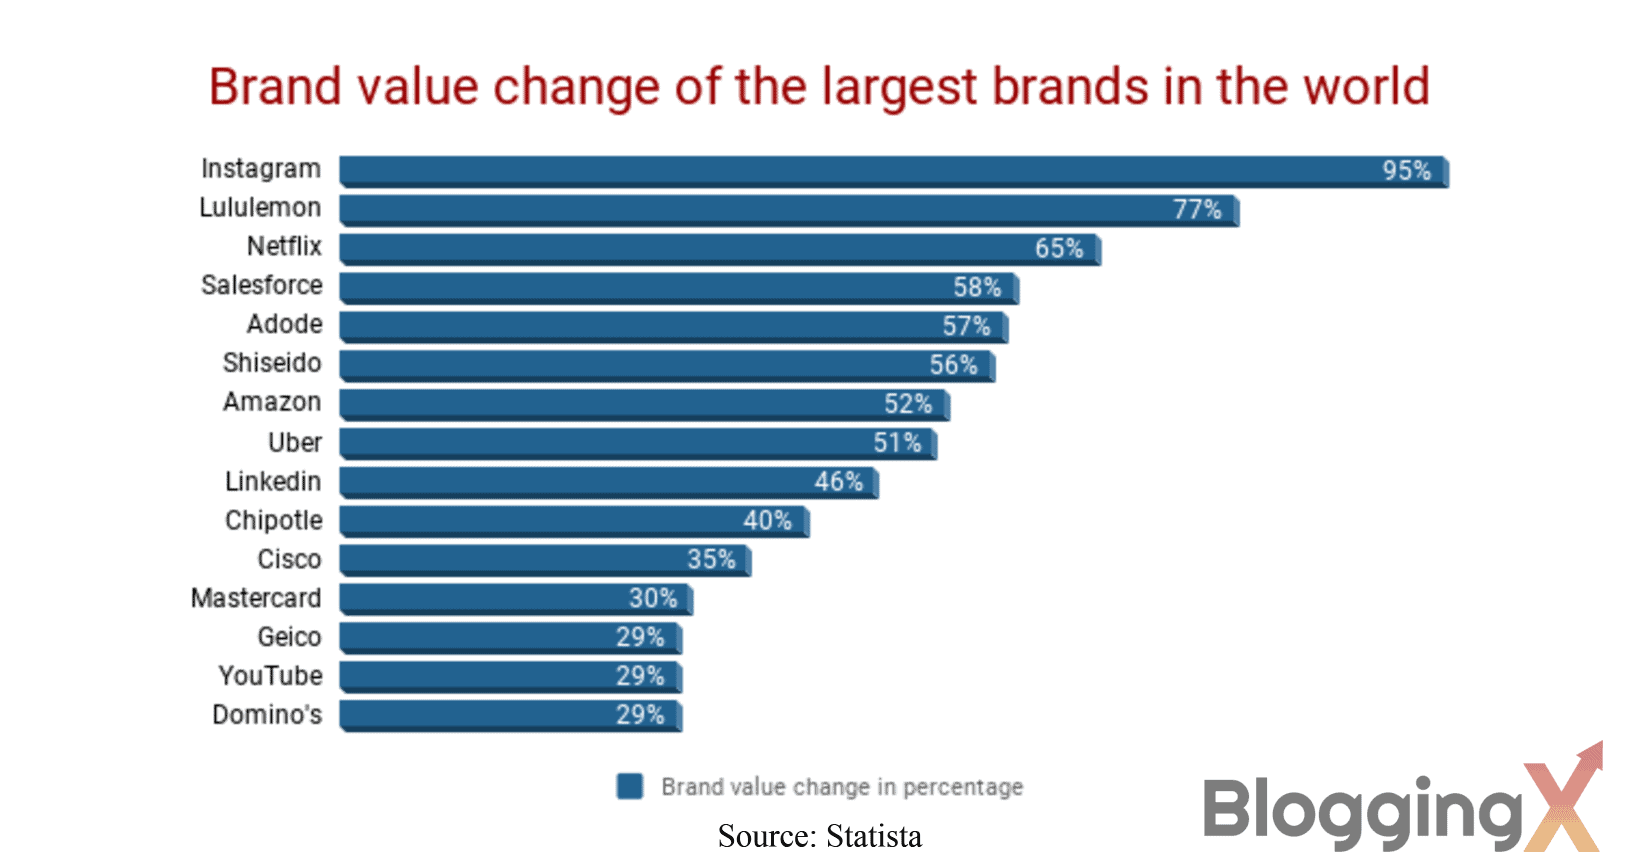 Brand value change of the largest brands in the world